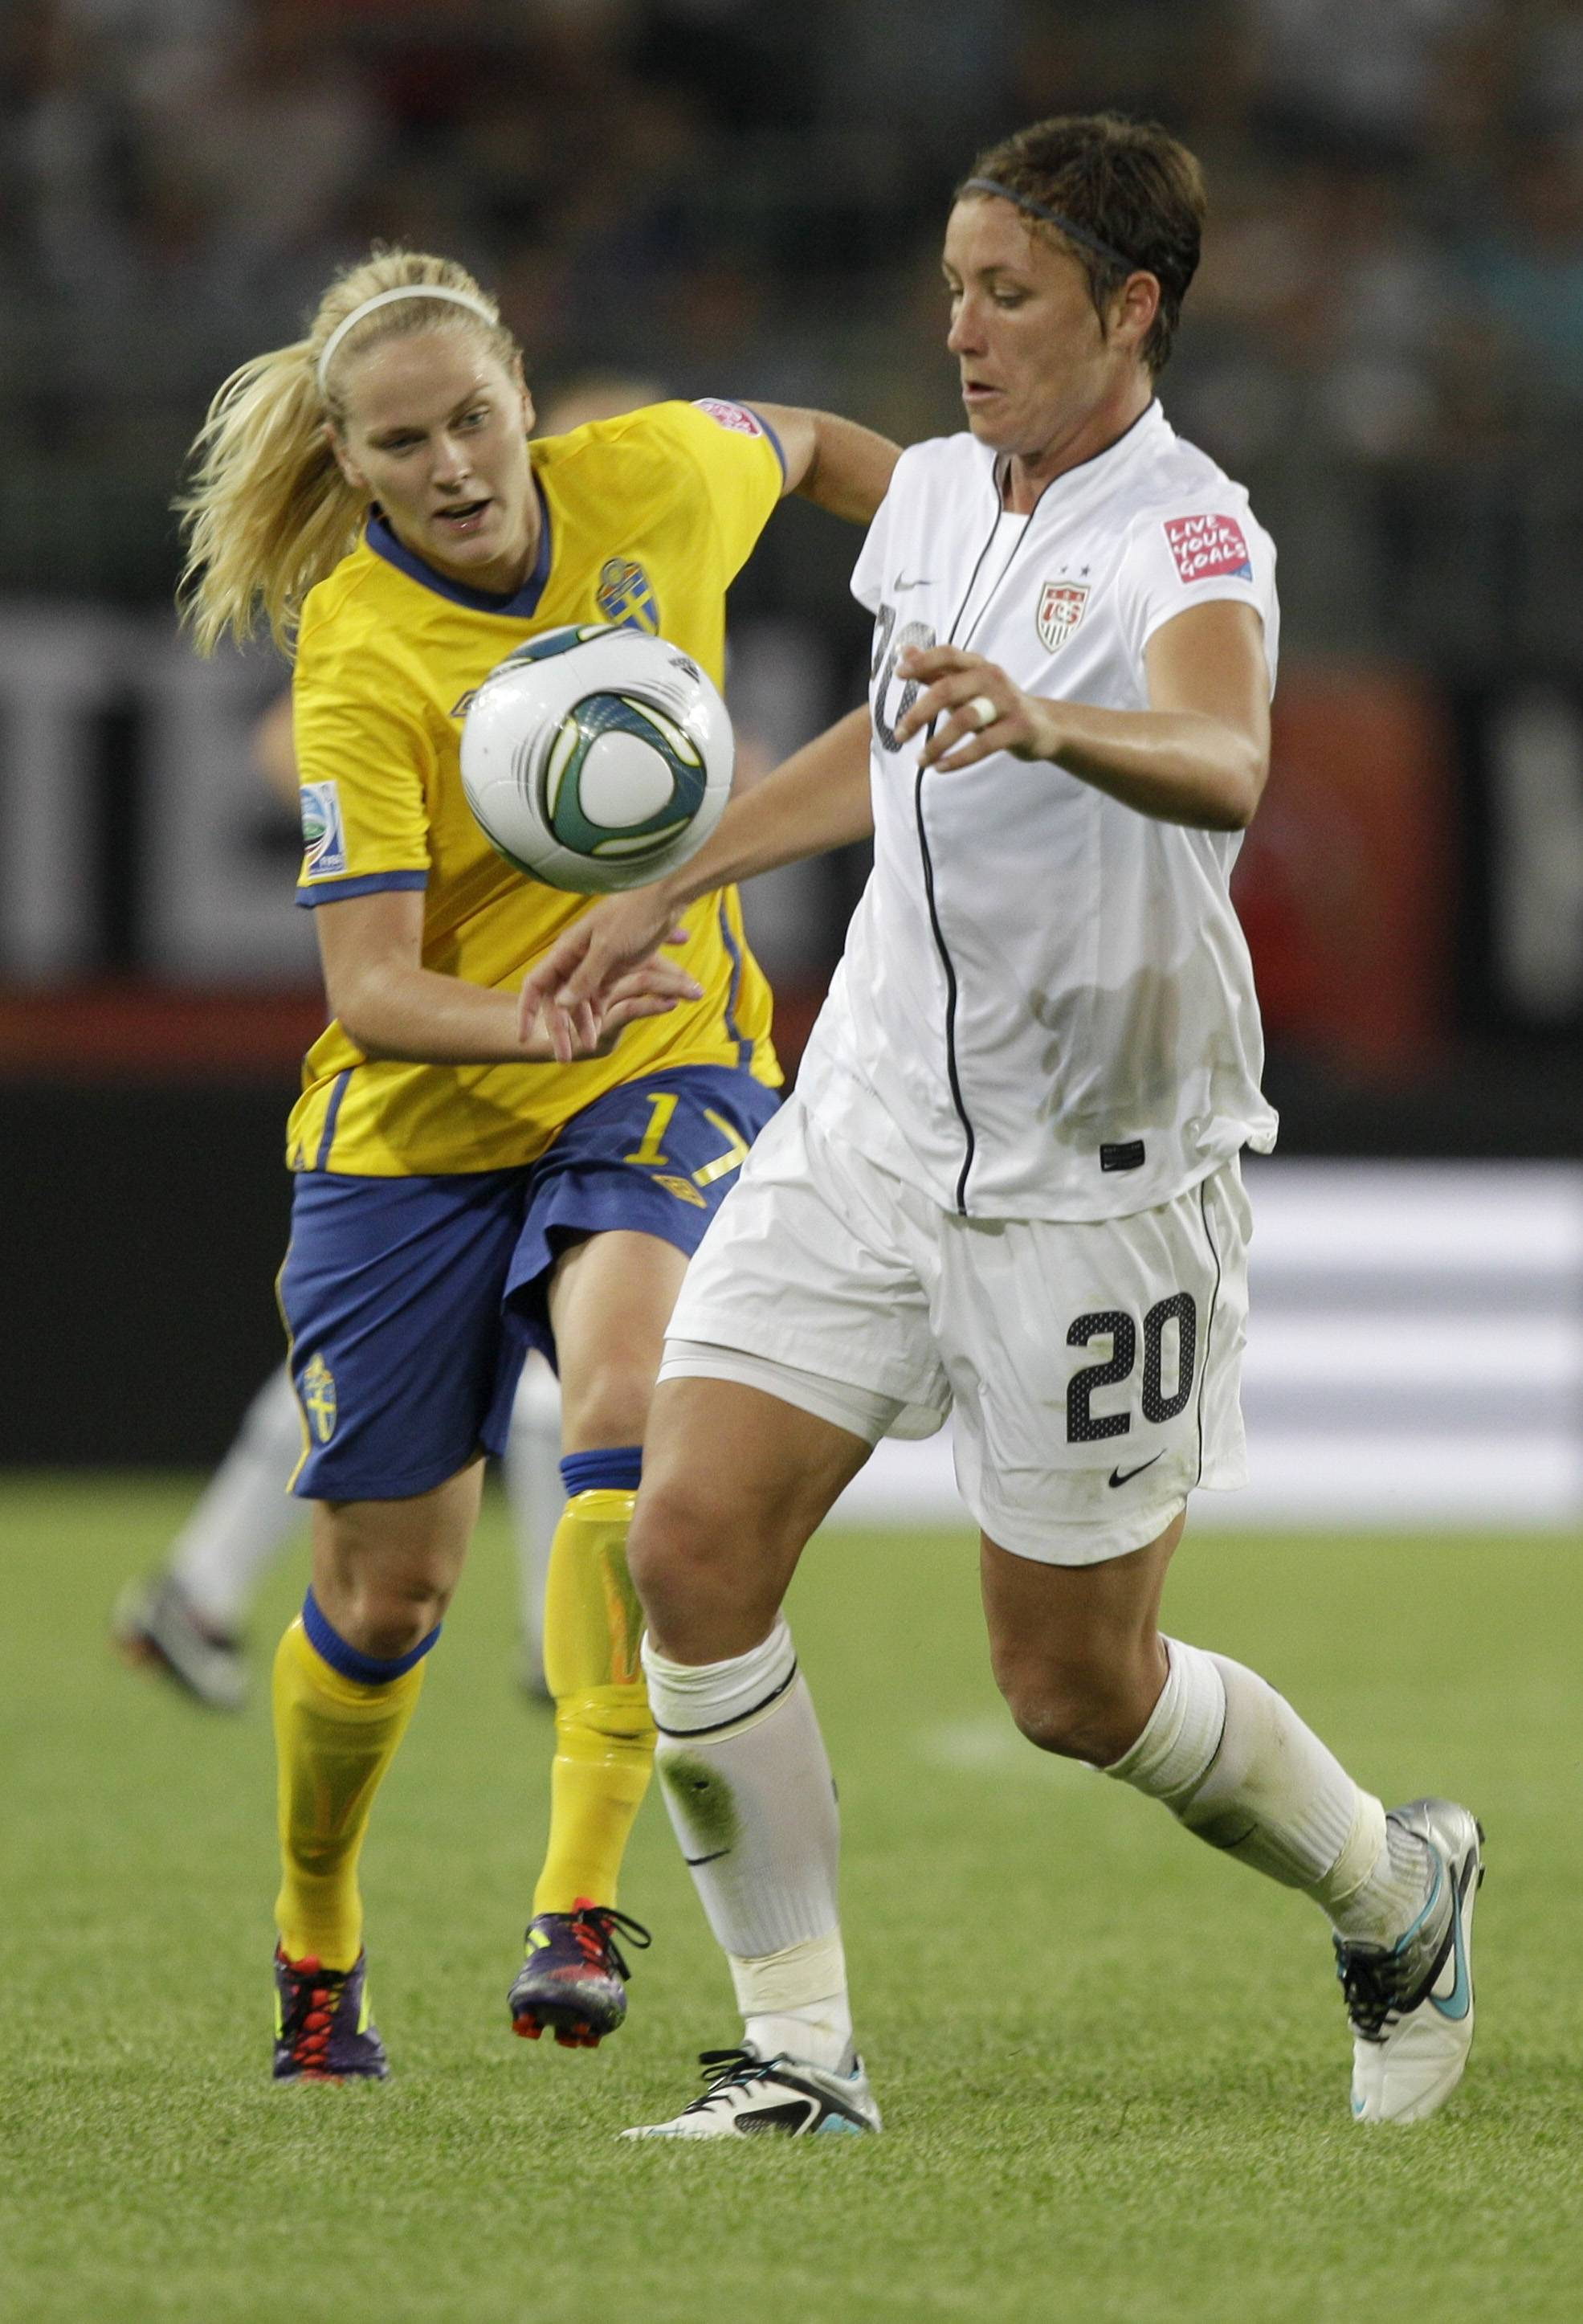 Abby Wambach and Sweden's Lisa Dahlkvist, left, challenge for the ball during the group C match between Sweden and the United States at the Women's Soccer World Cup in Wolfsburg, Germany, Wednesday.